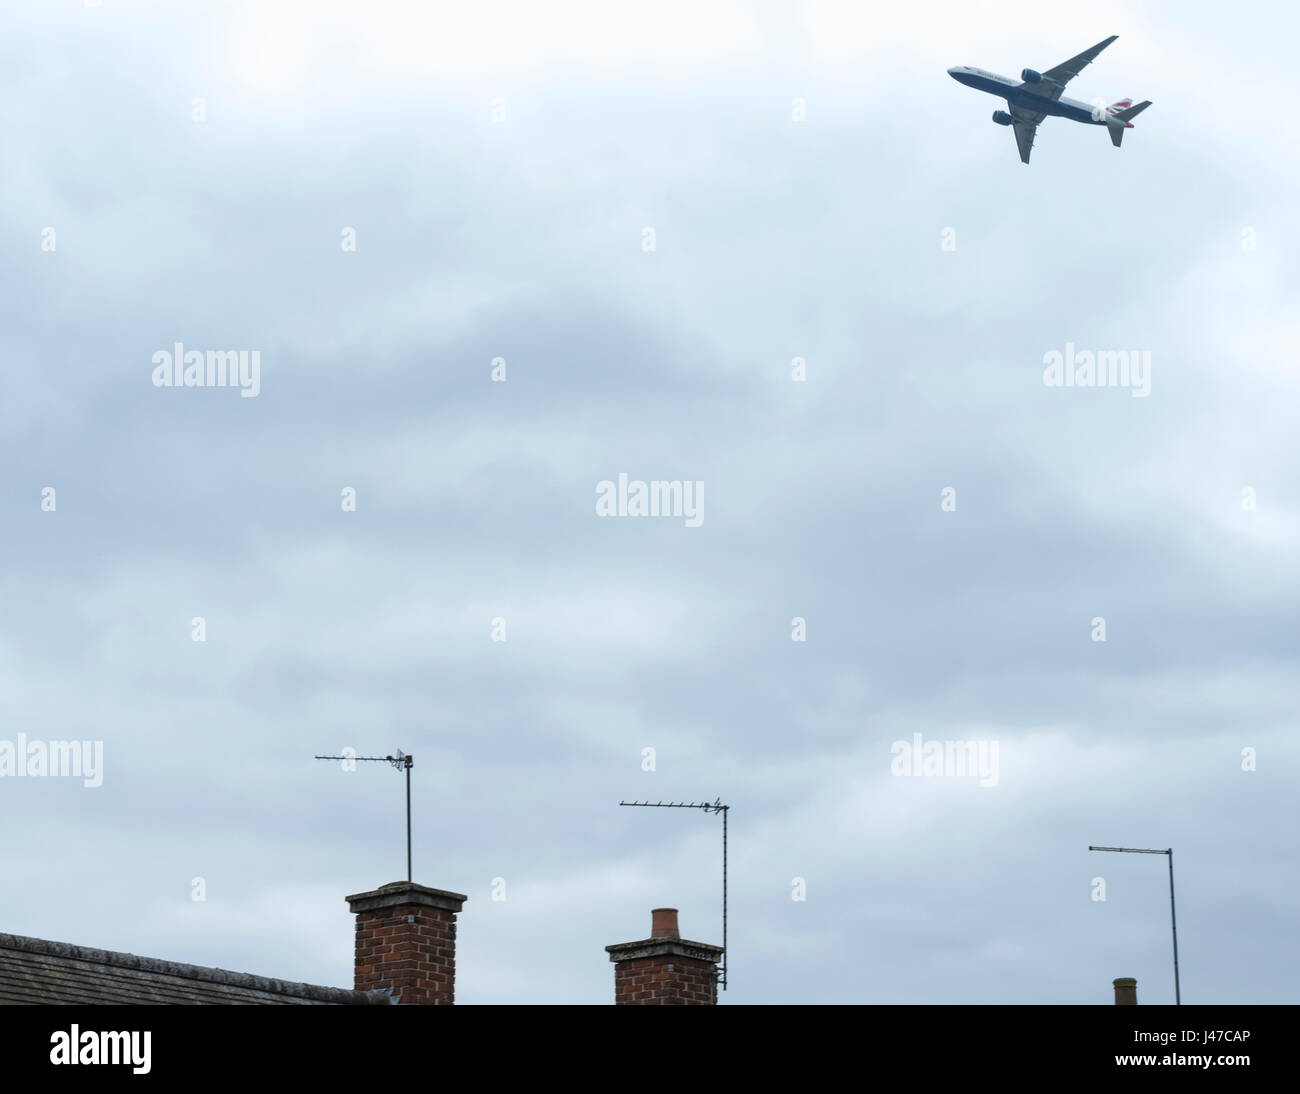 Les aéronefs volant à basse altitude près de l'aéroport d'Heathrow de Londres Photo Stock